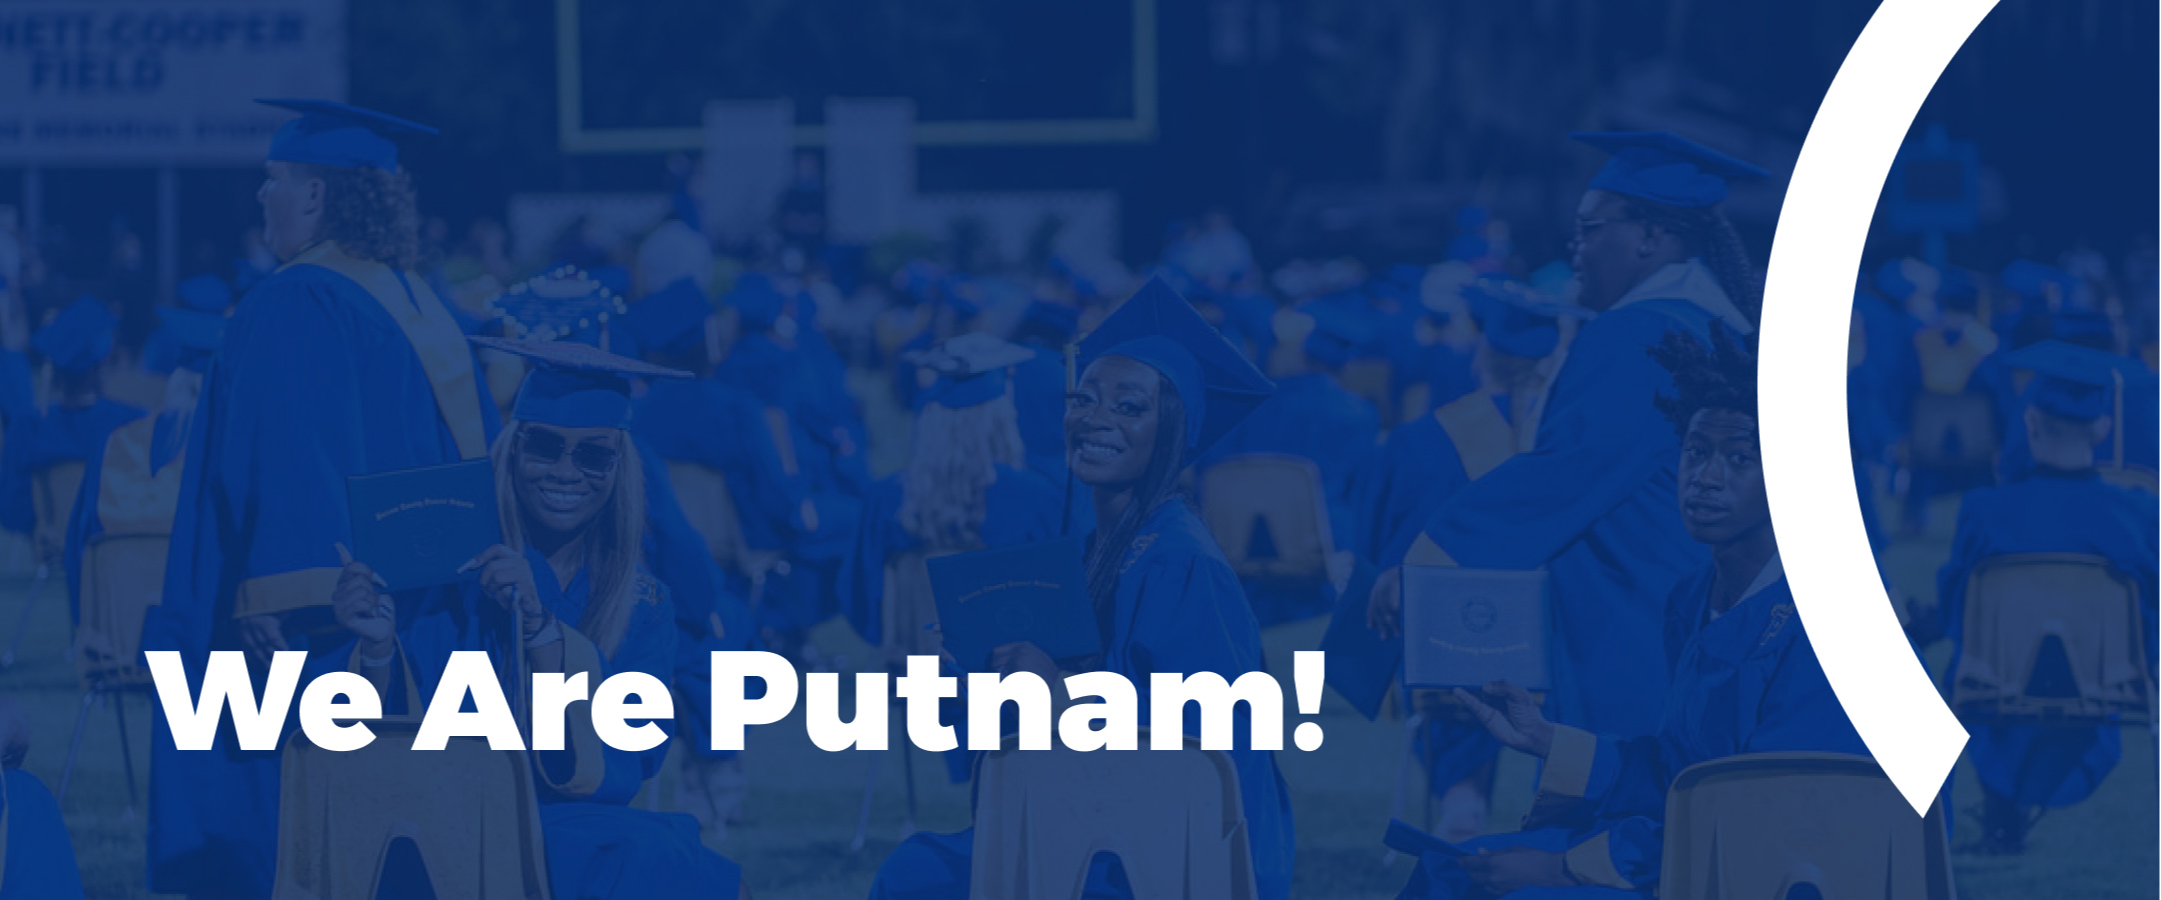 we are putnam section cover image: students smiling